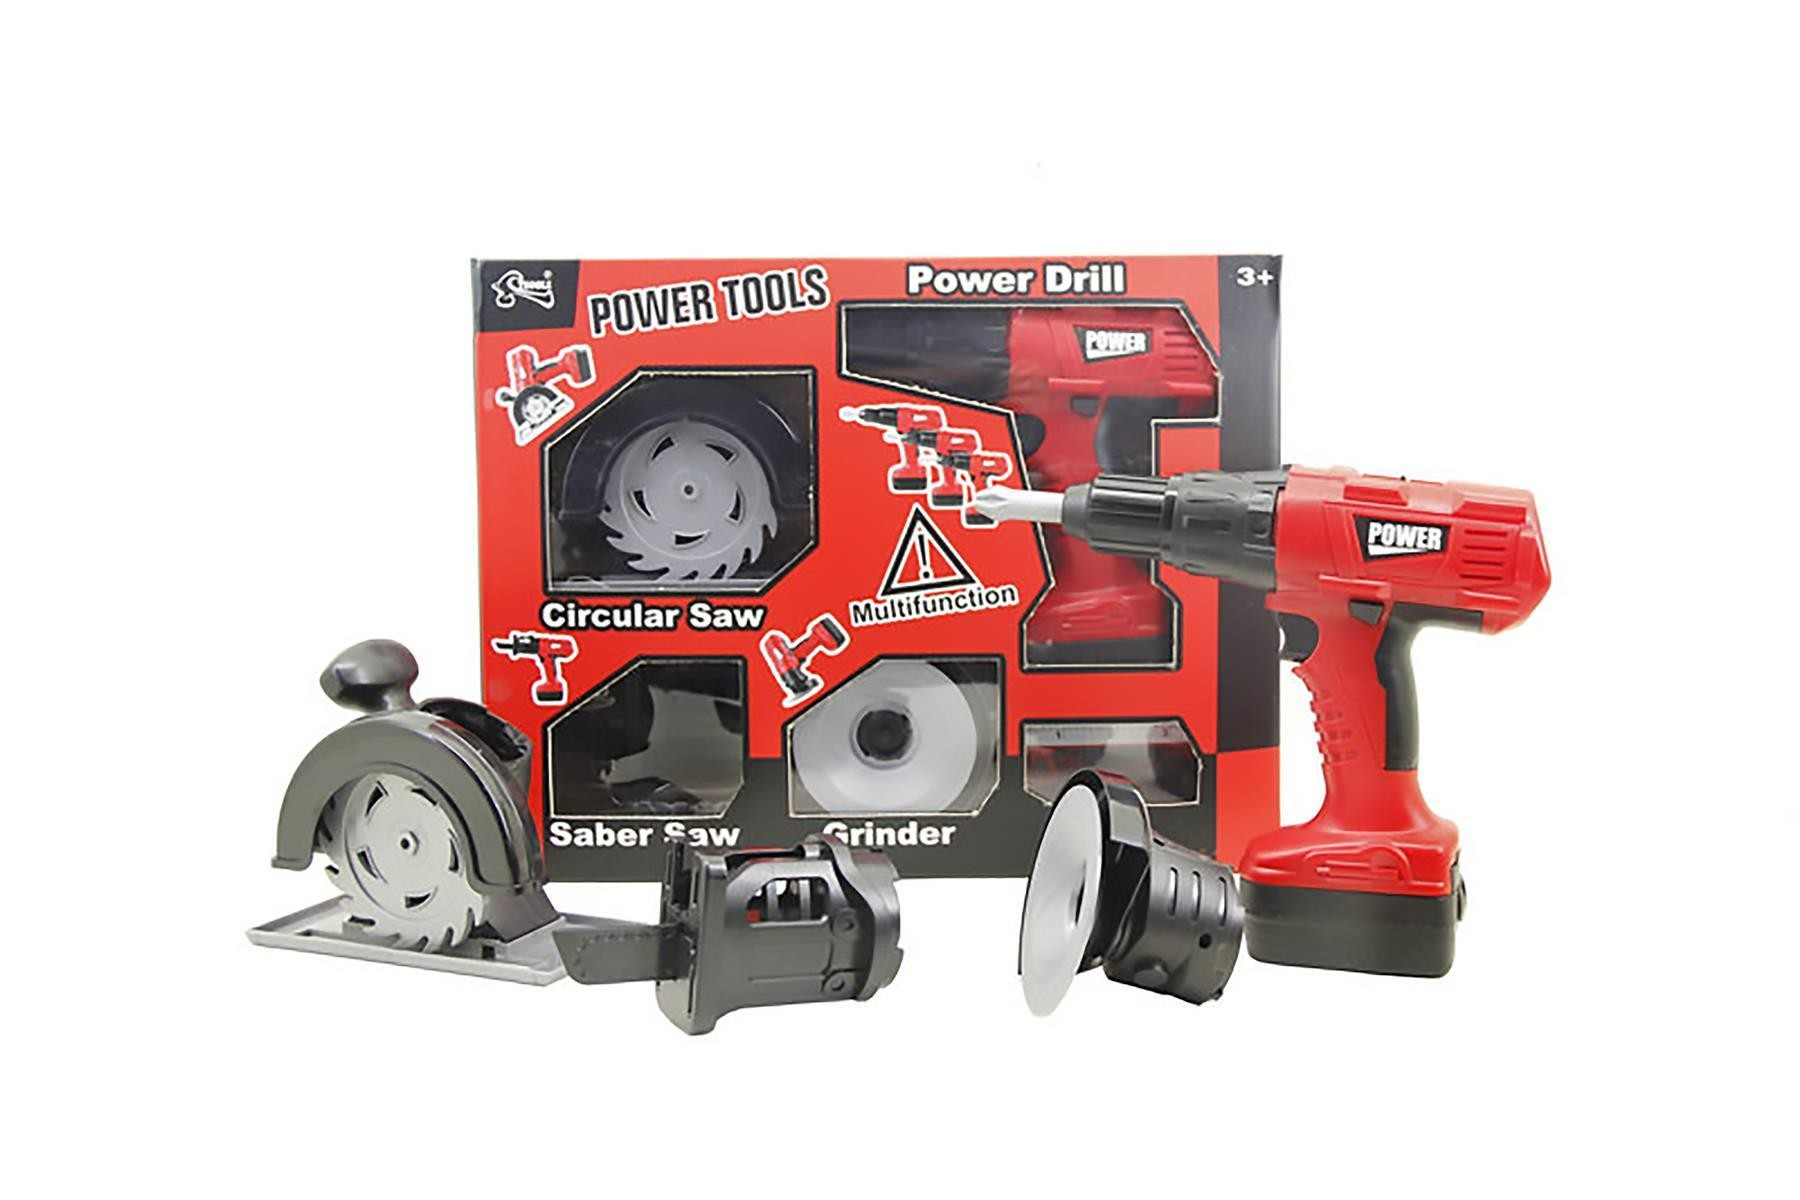 Multinational Electric Drill Toy Construction Power Tool for Kids Pretend Play Set